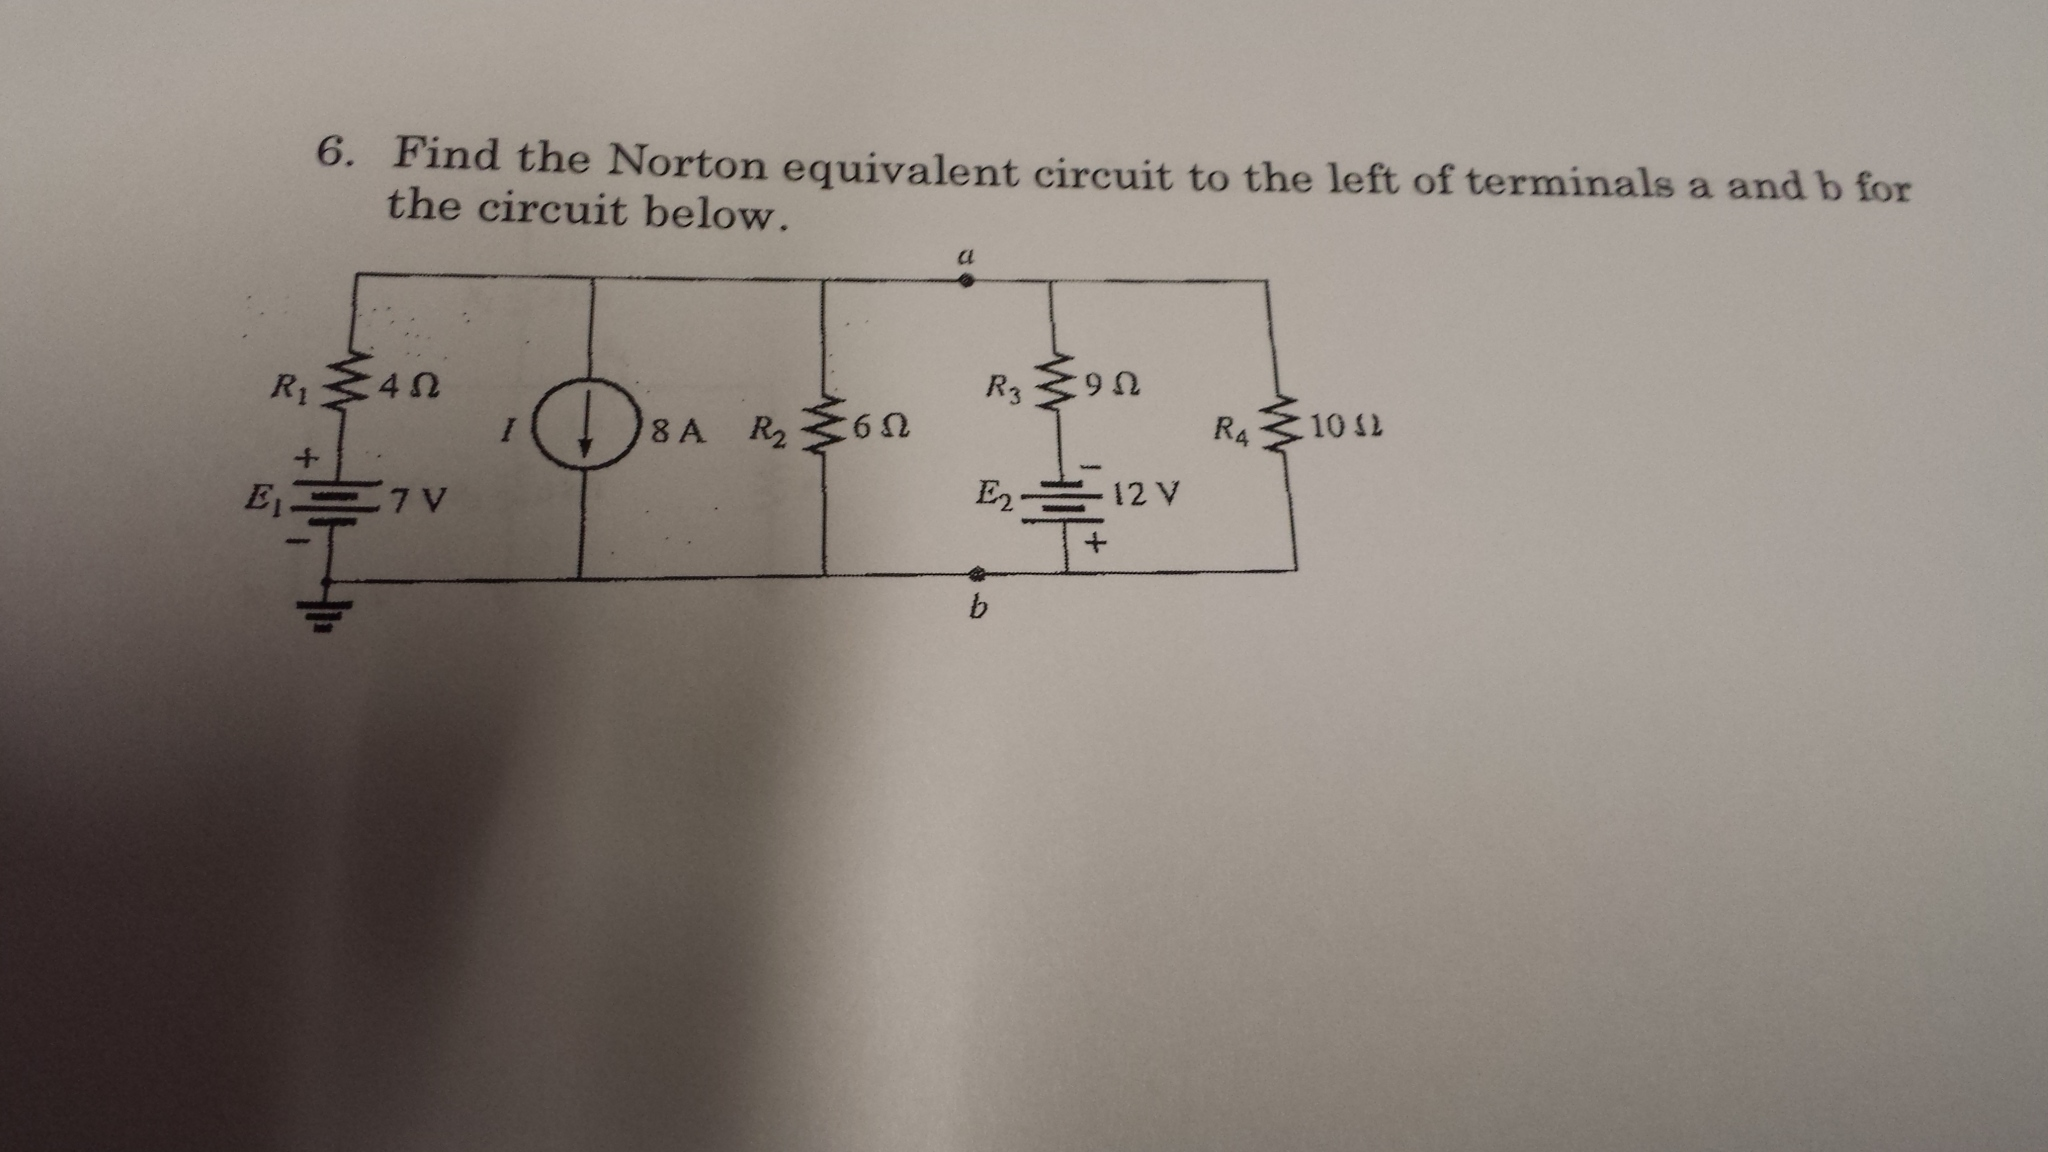 Find the Norton equivalent circuit to the left of